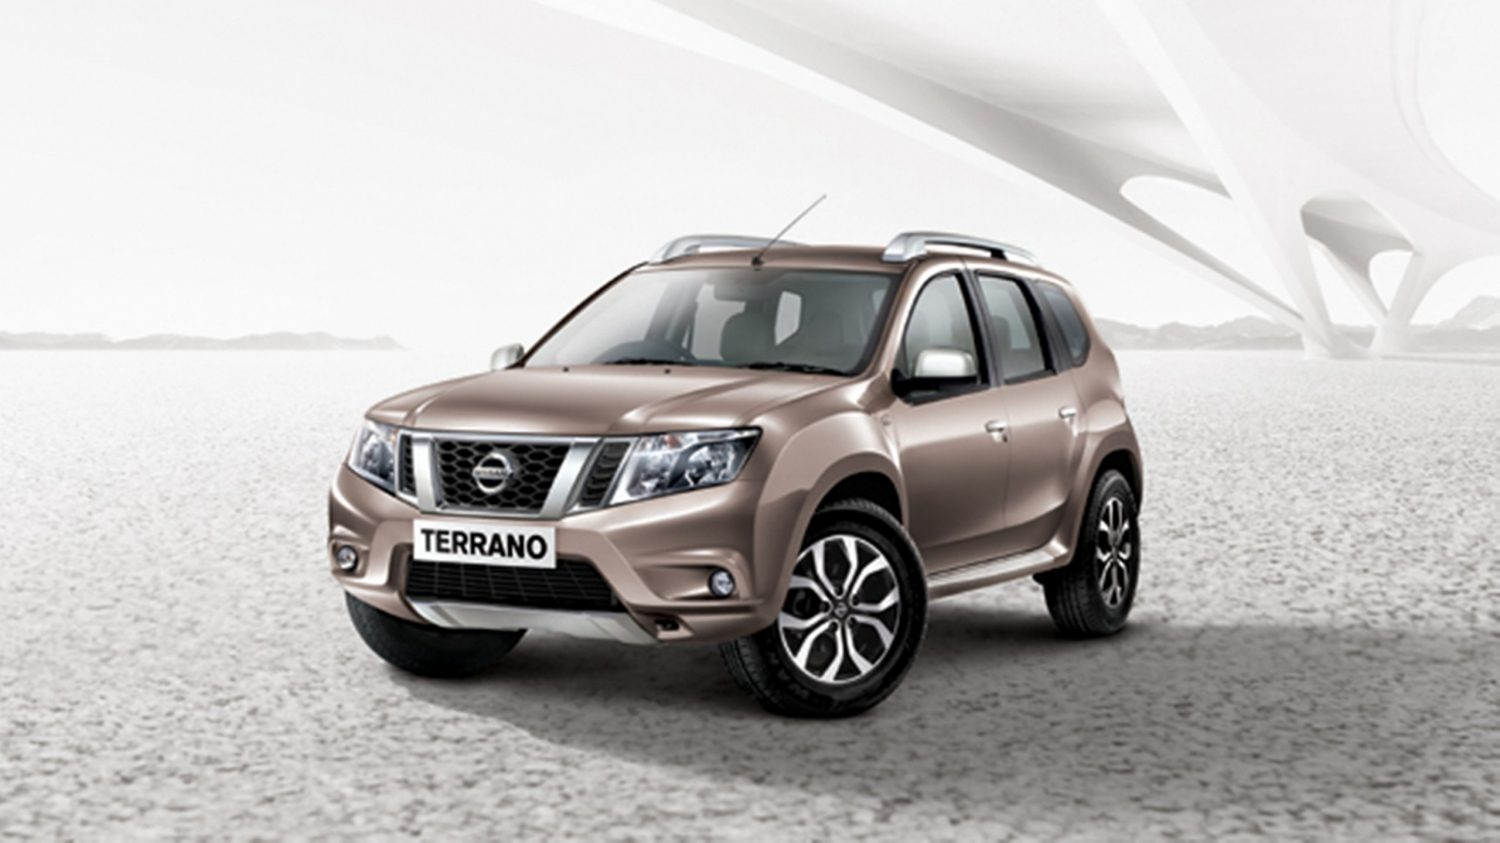 NISSAN TO INCREASE CAR PRICES FROM JANUARY 2014